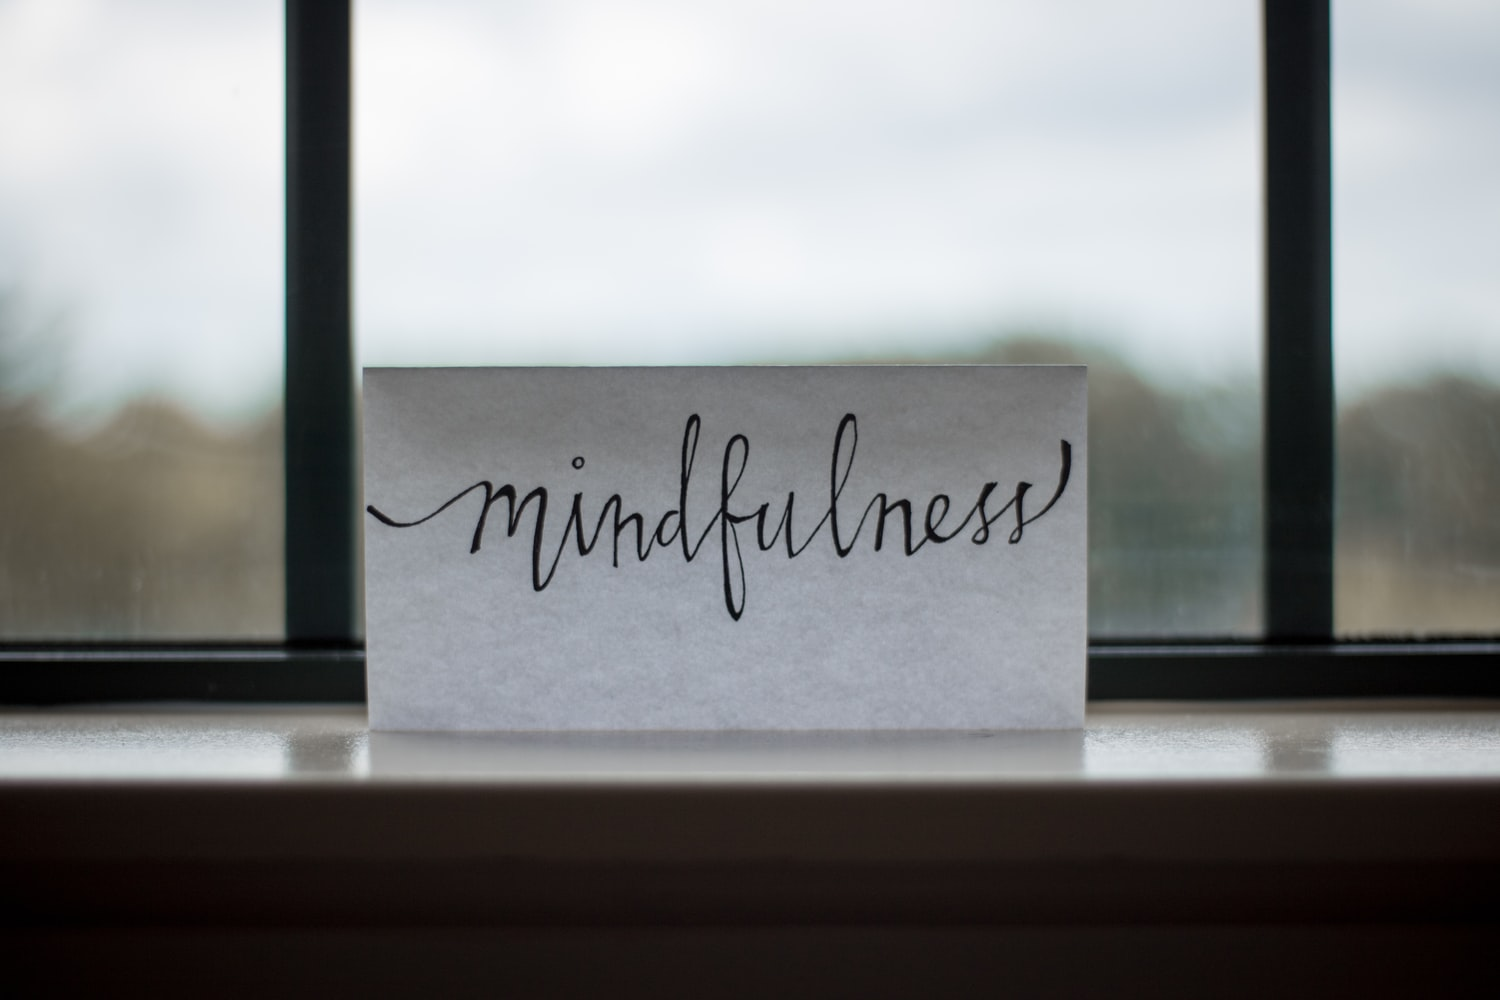 how to be midful, mindfulness, mindfulness guide